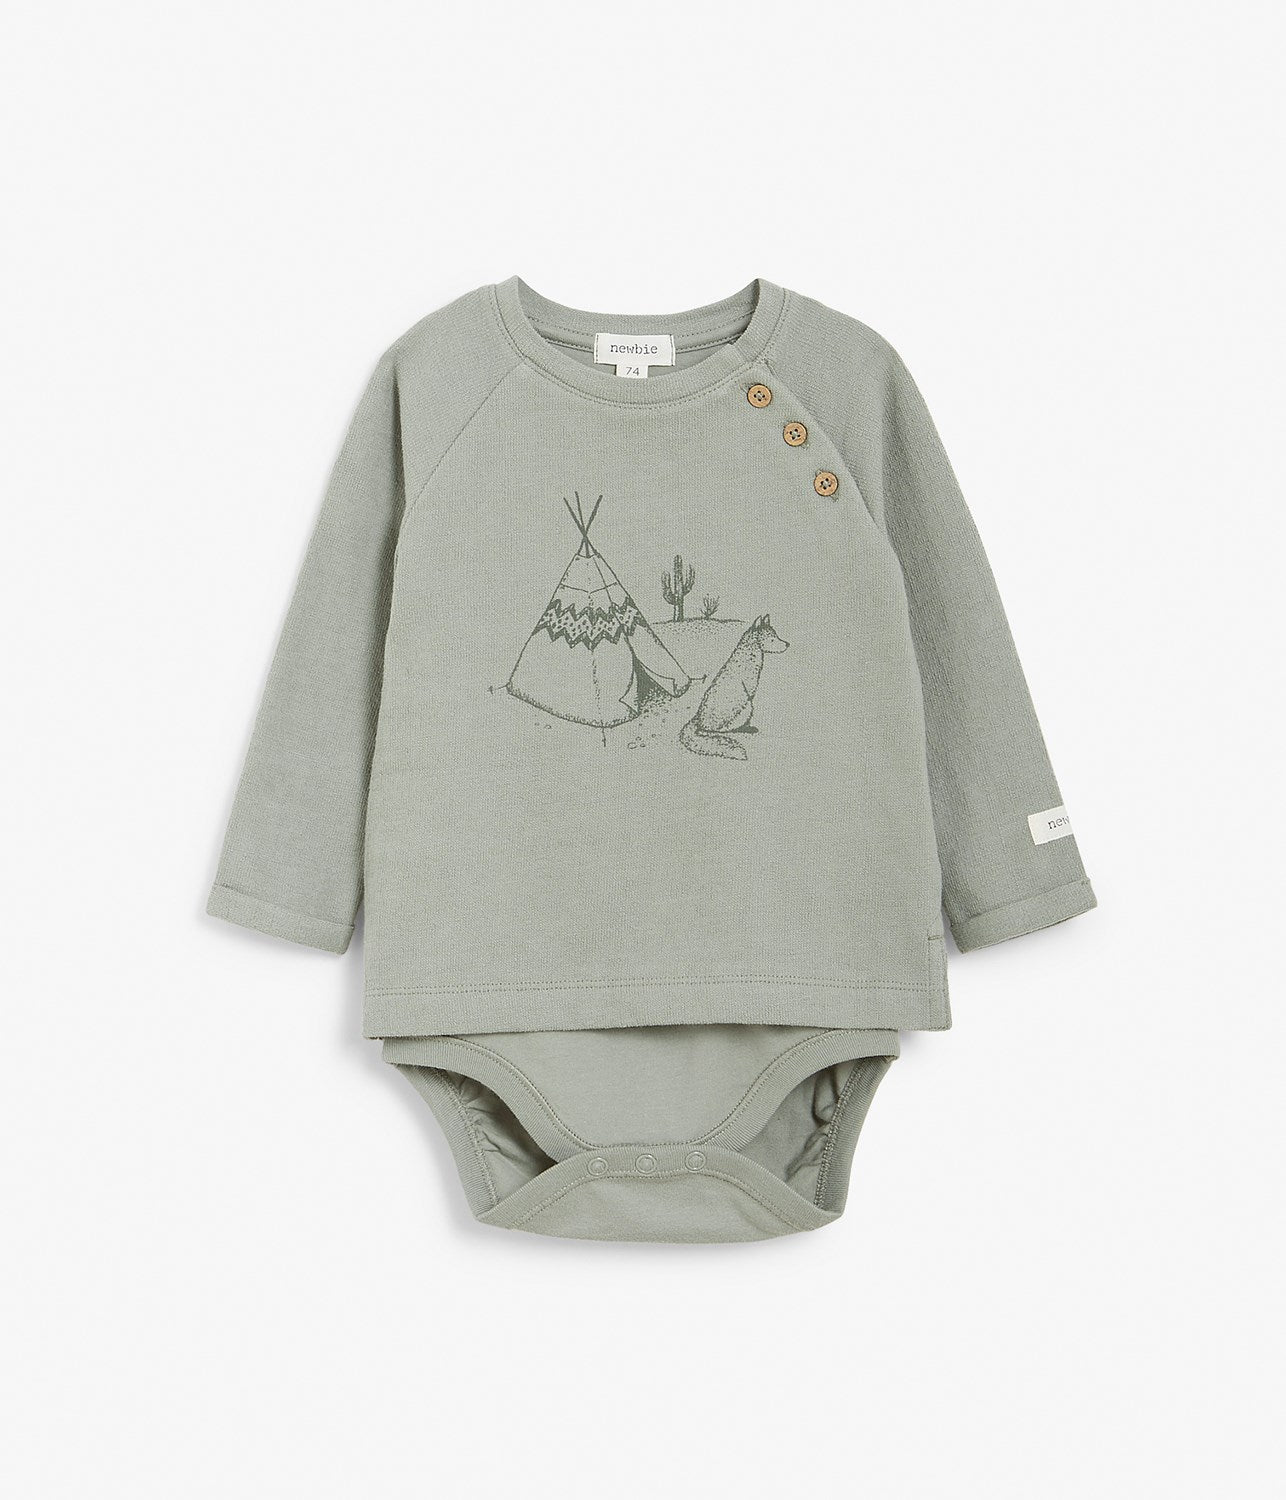 Baby khaki body with tipi tent print